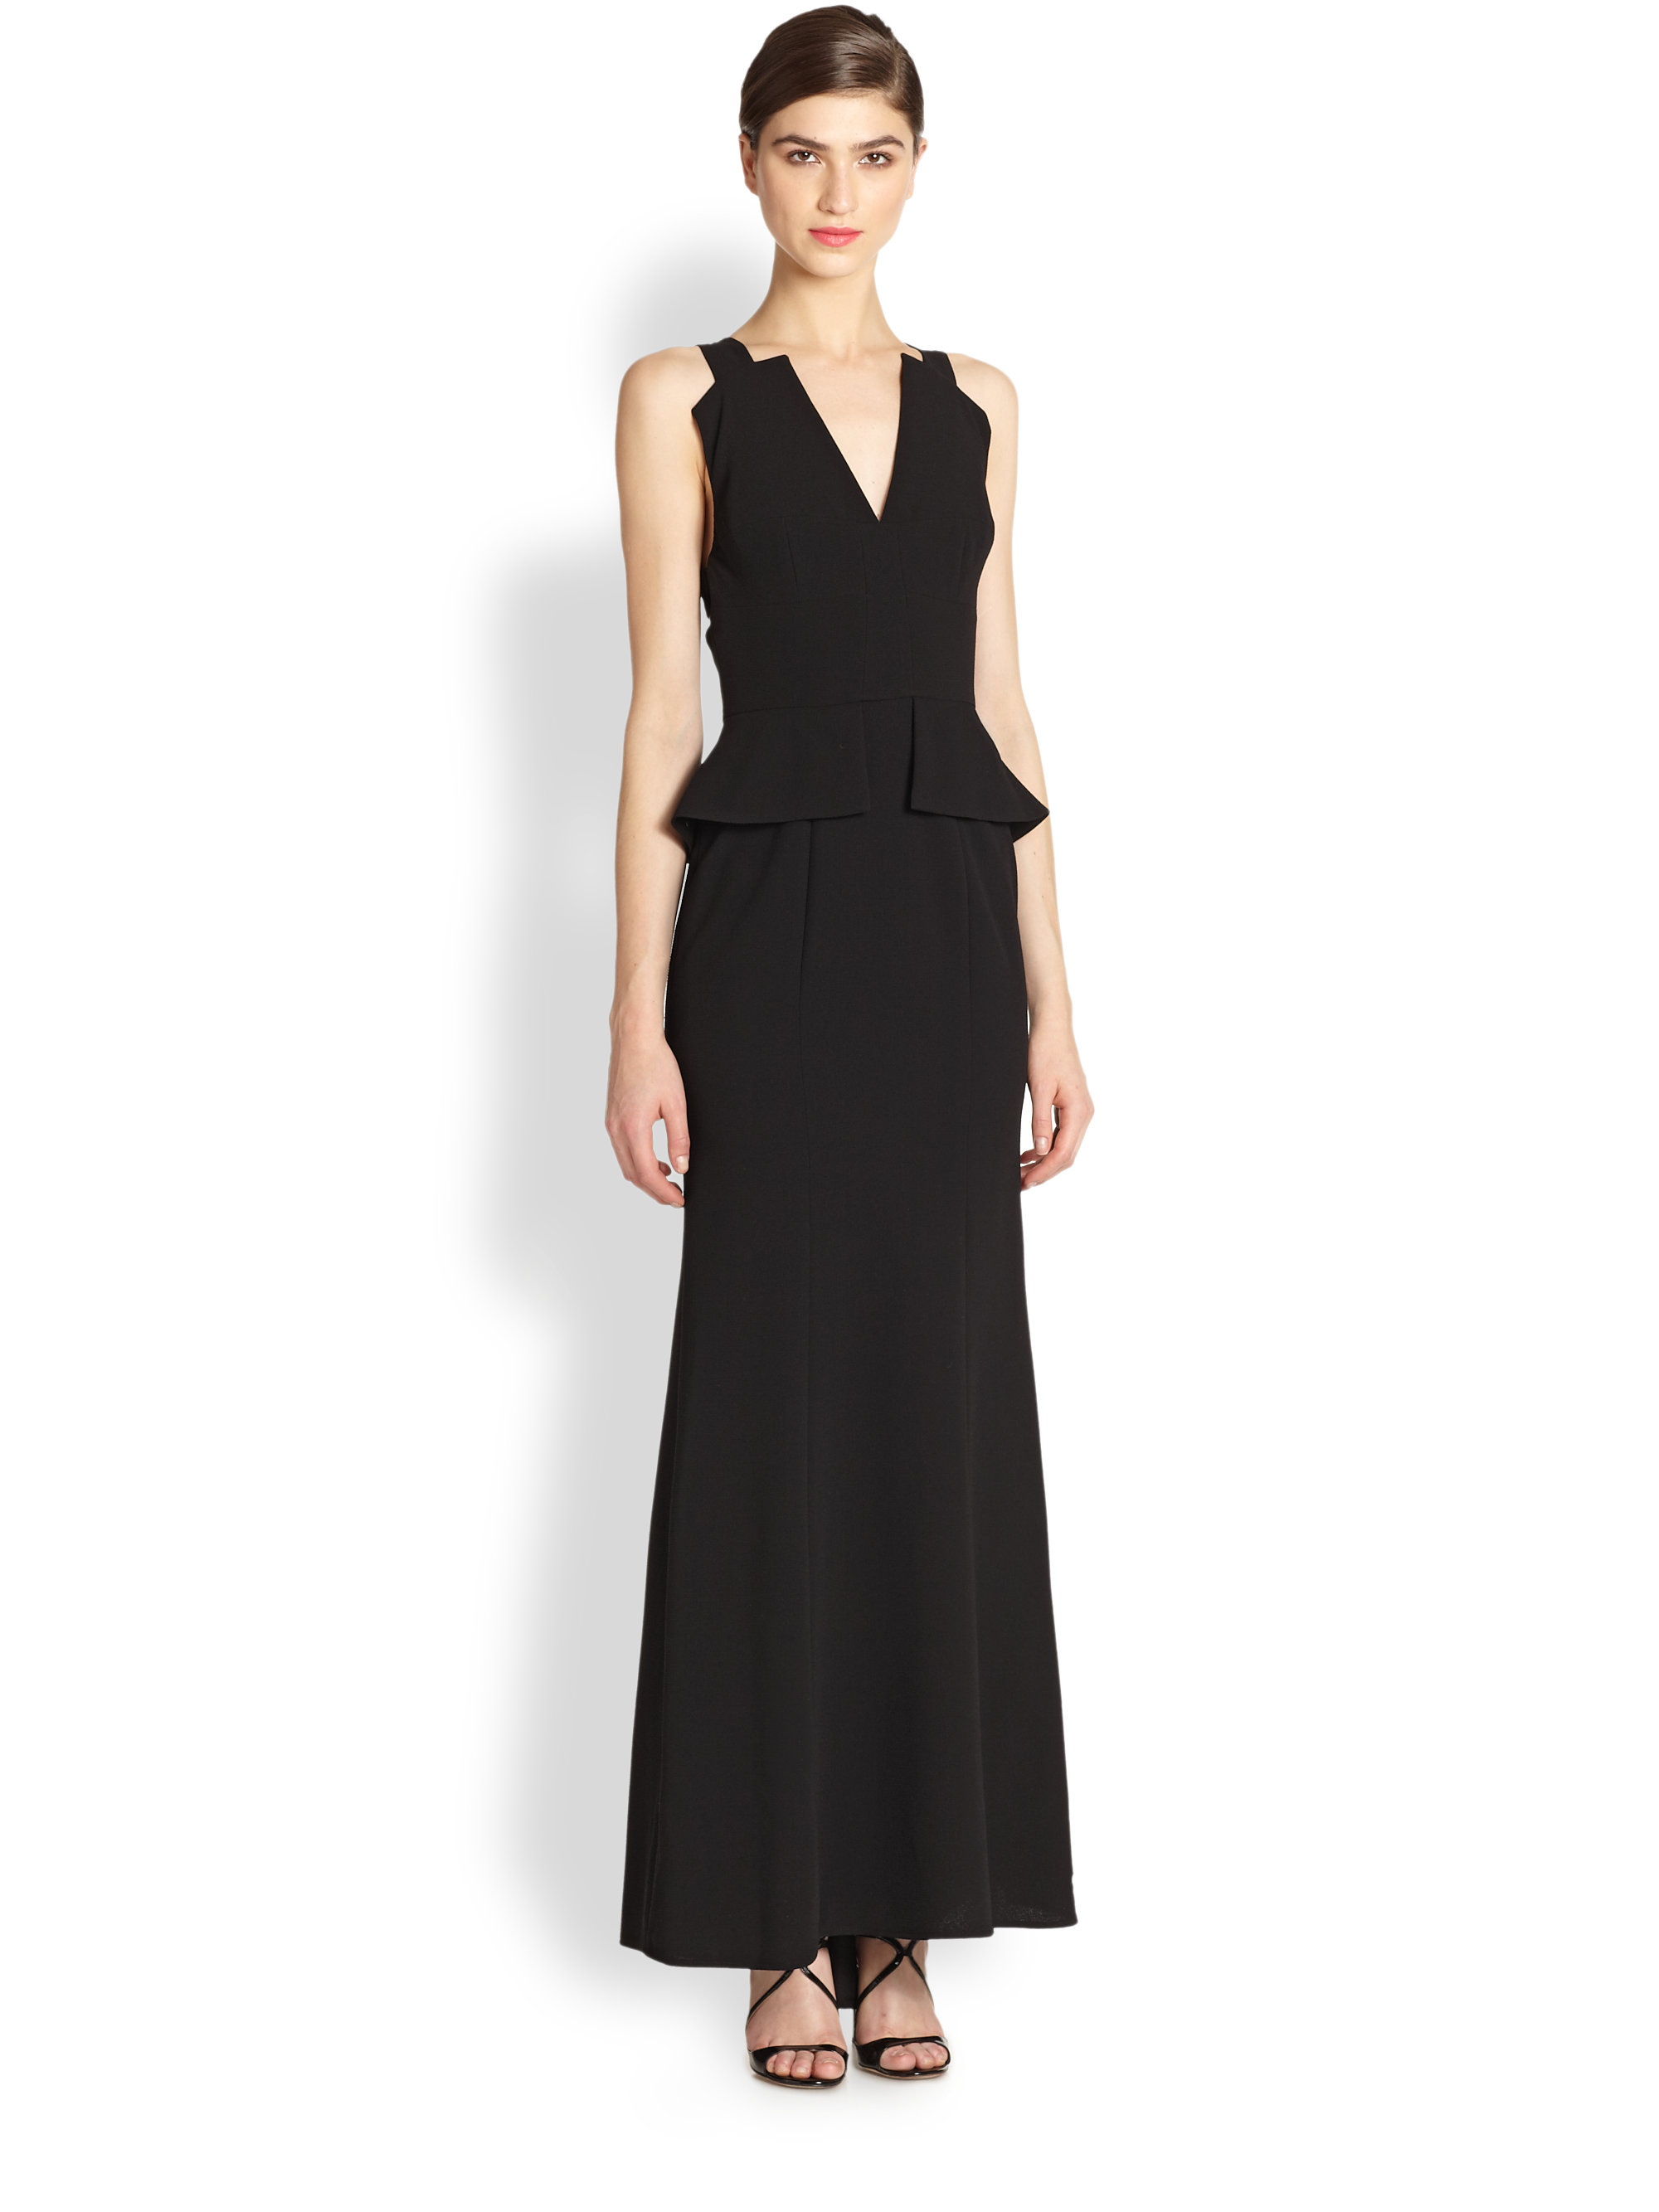 Bcbg maxi dress black